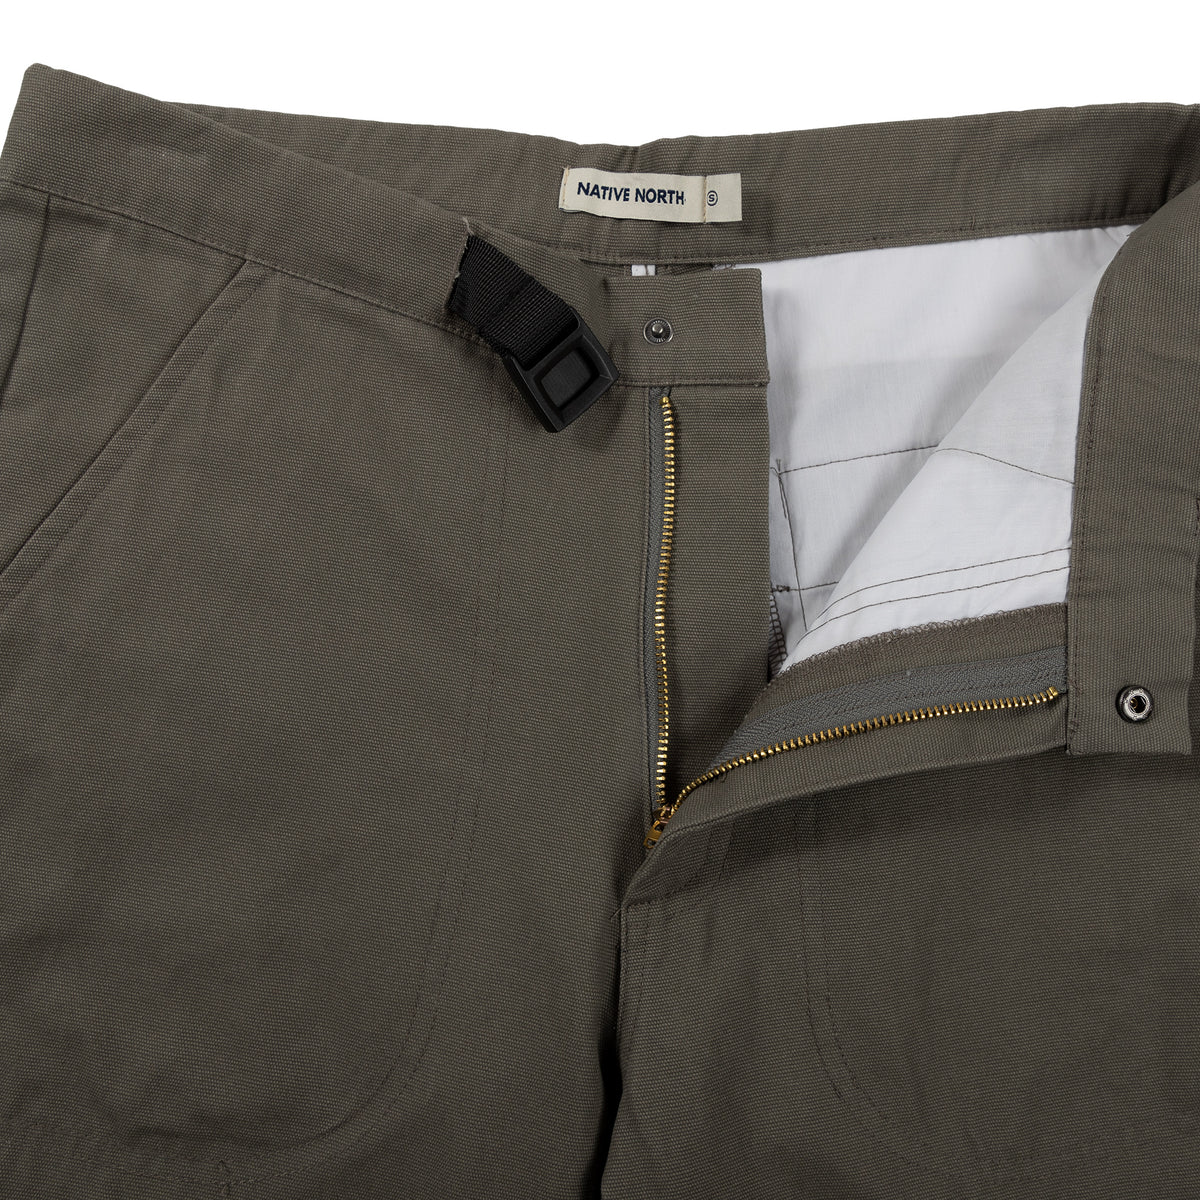 Native North Toro Canvas Pant Bottoms Olive Detail